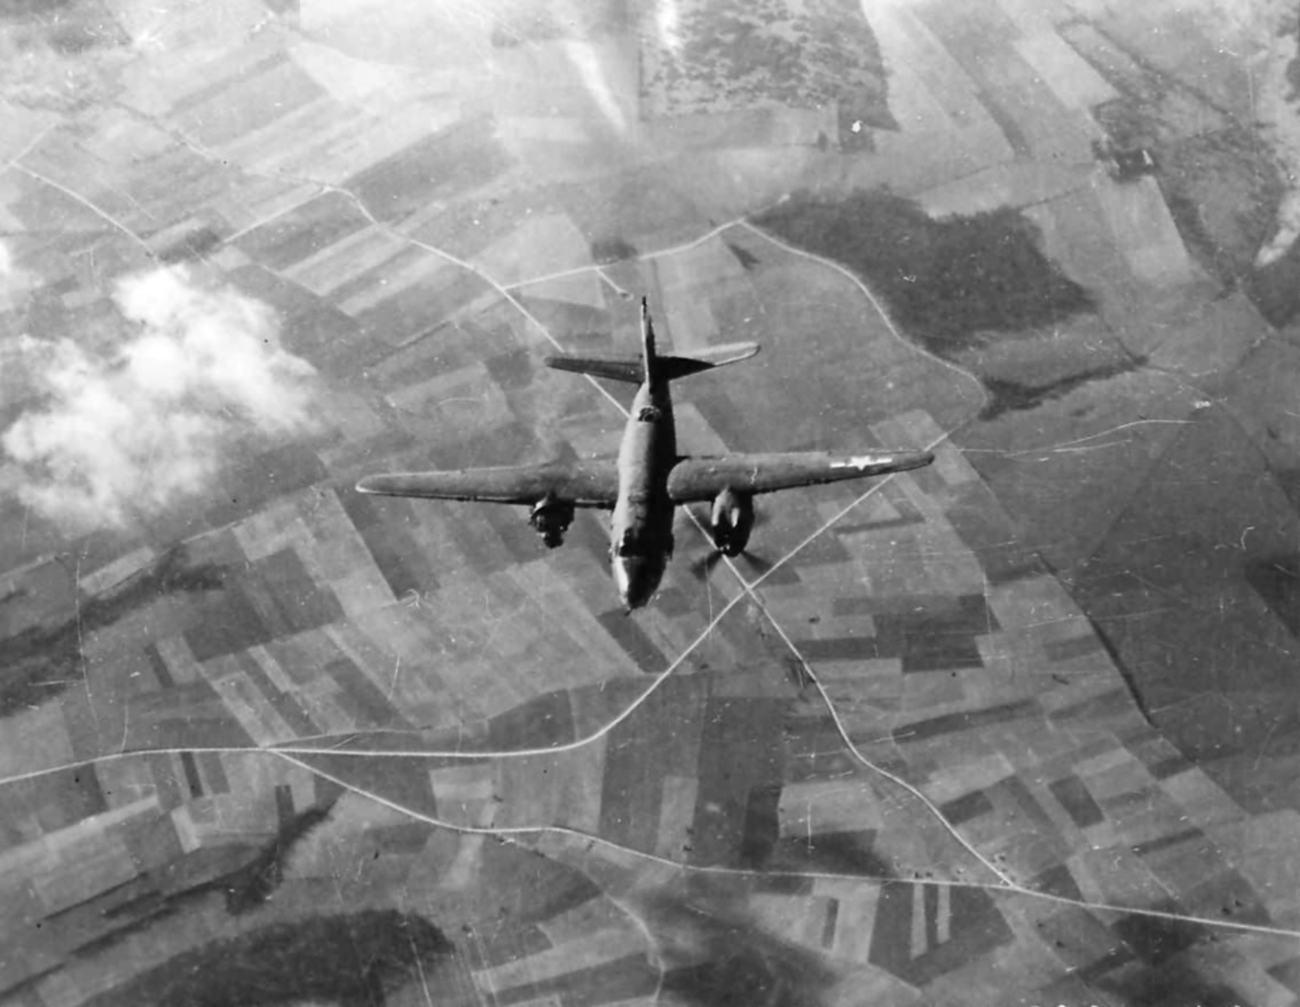 USAAF 41 35000 B 26C Marauder 323BG455BS YUR Swamp Chicken hit by flak over France 55 Feb 1944 MACR 2056 01